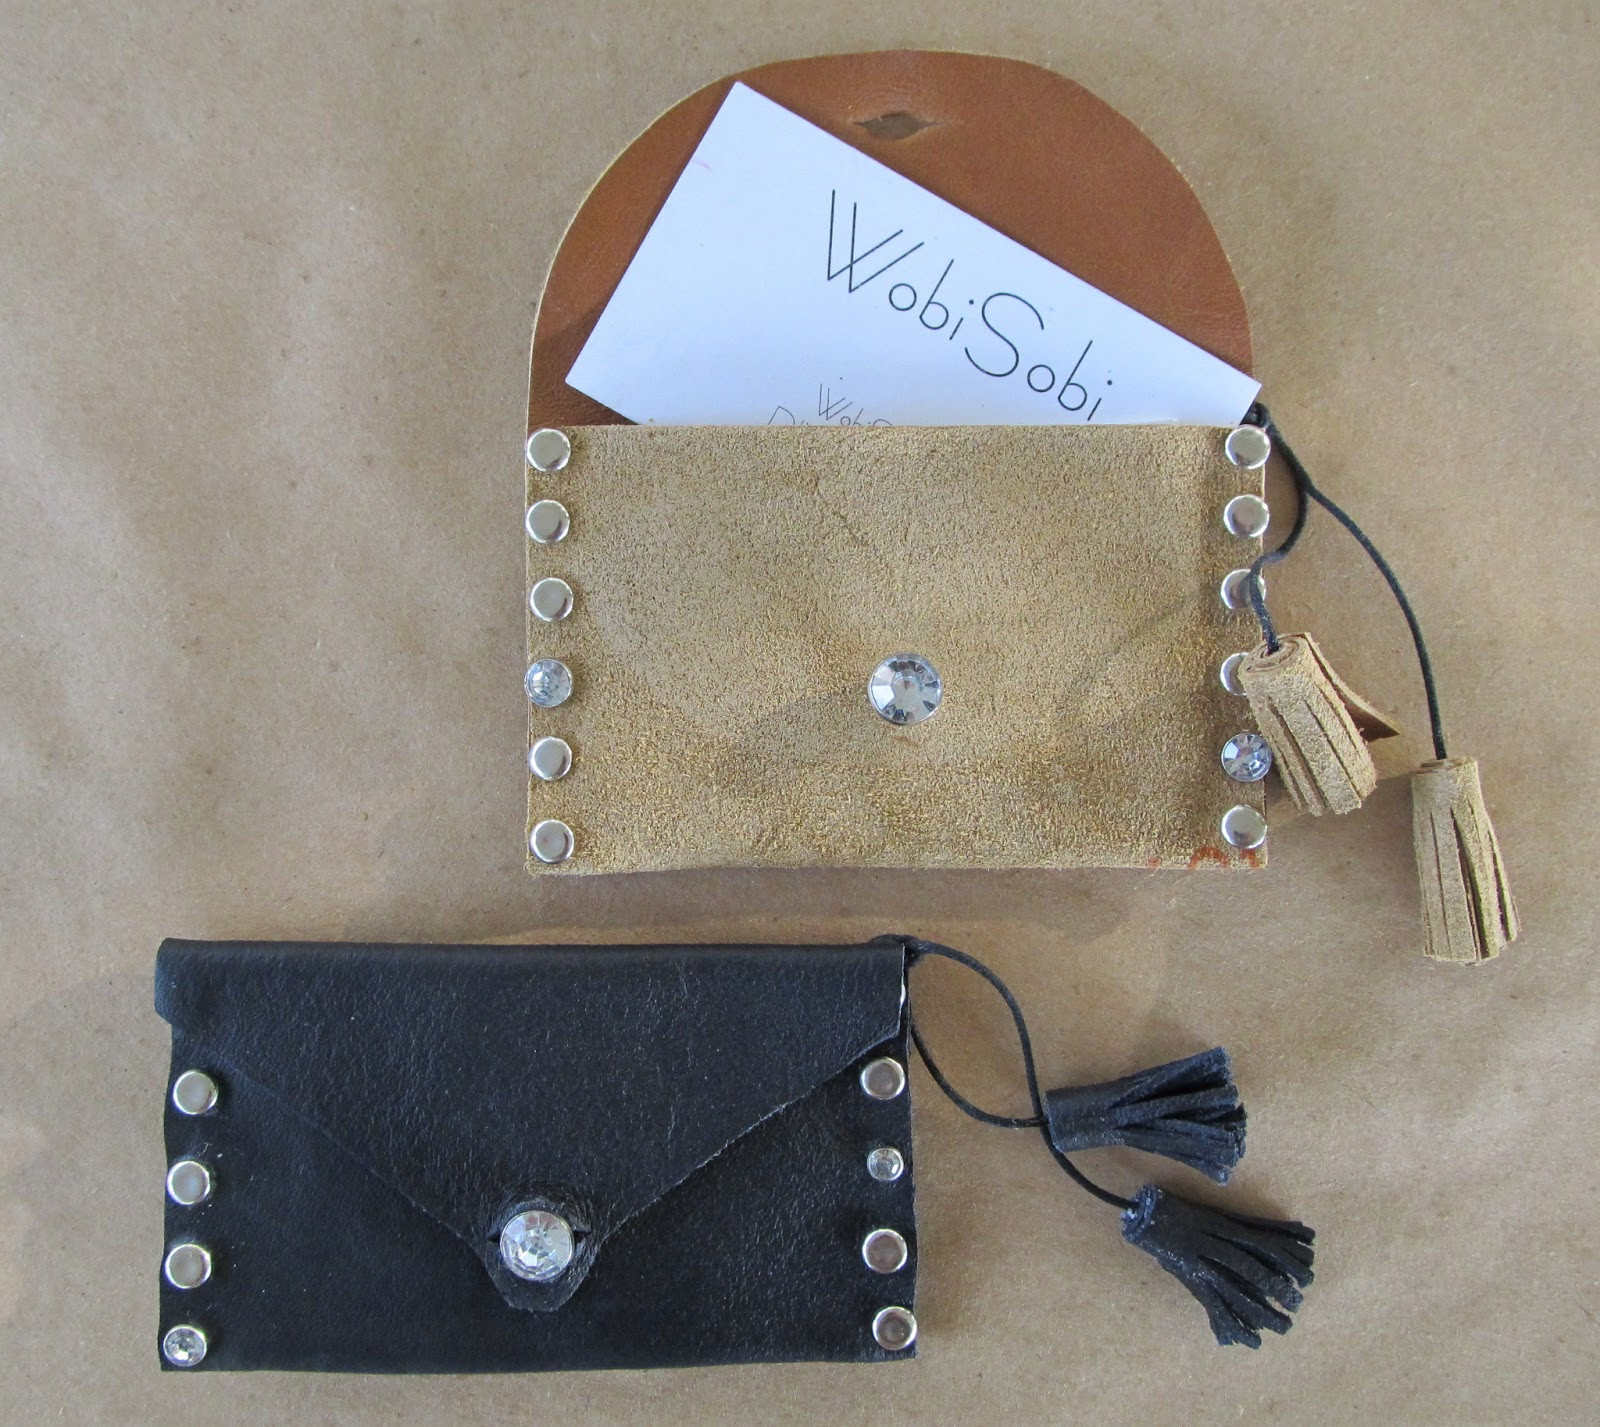 Best ideas about DIY Business Card Holders . Save or Pin WobiSobi Leather Business Card Holder DIY Now.